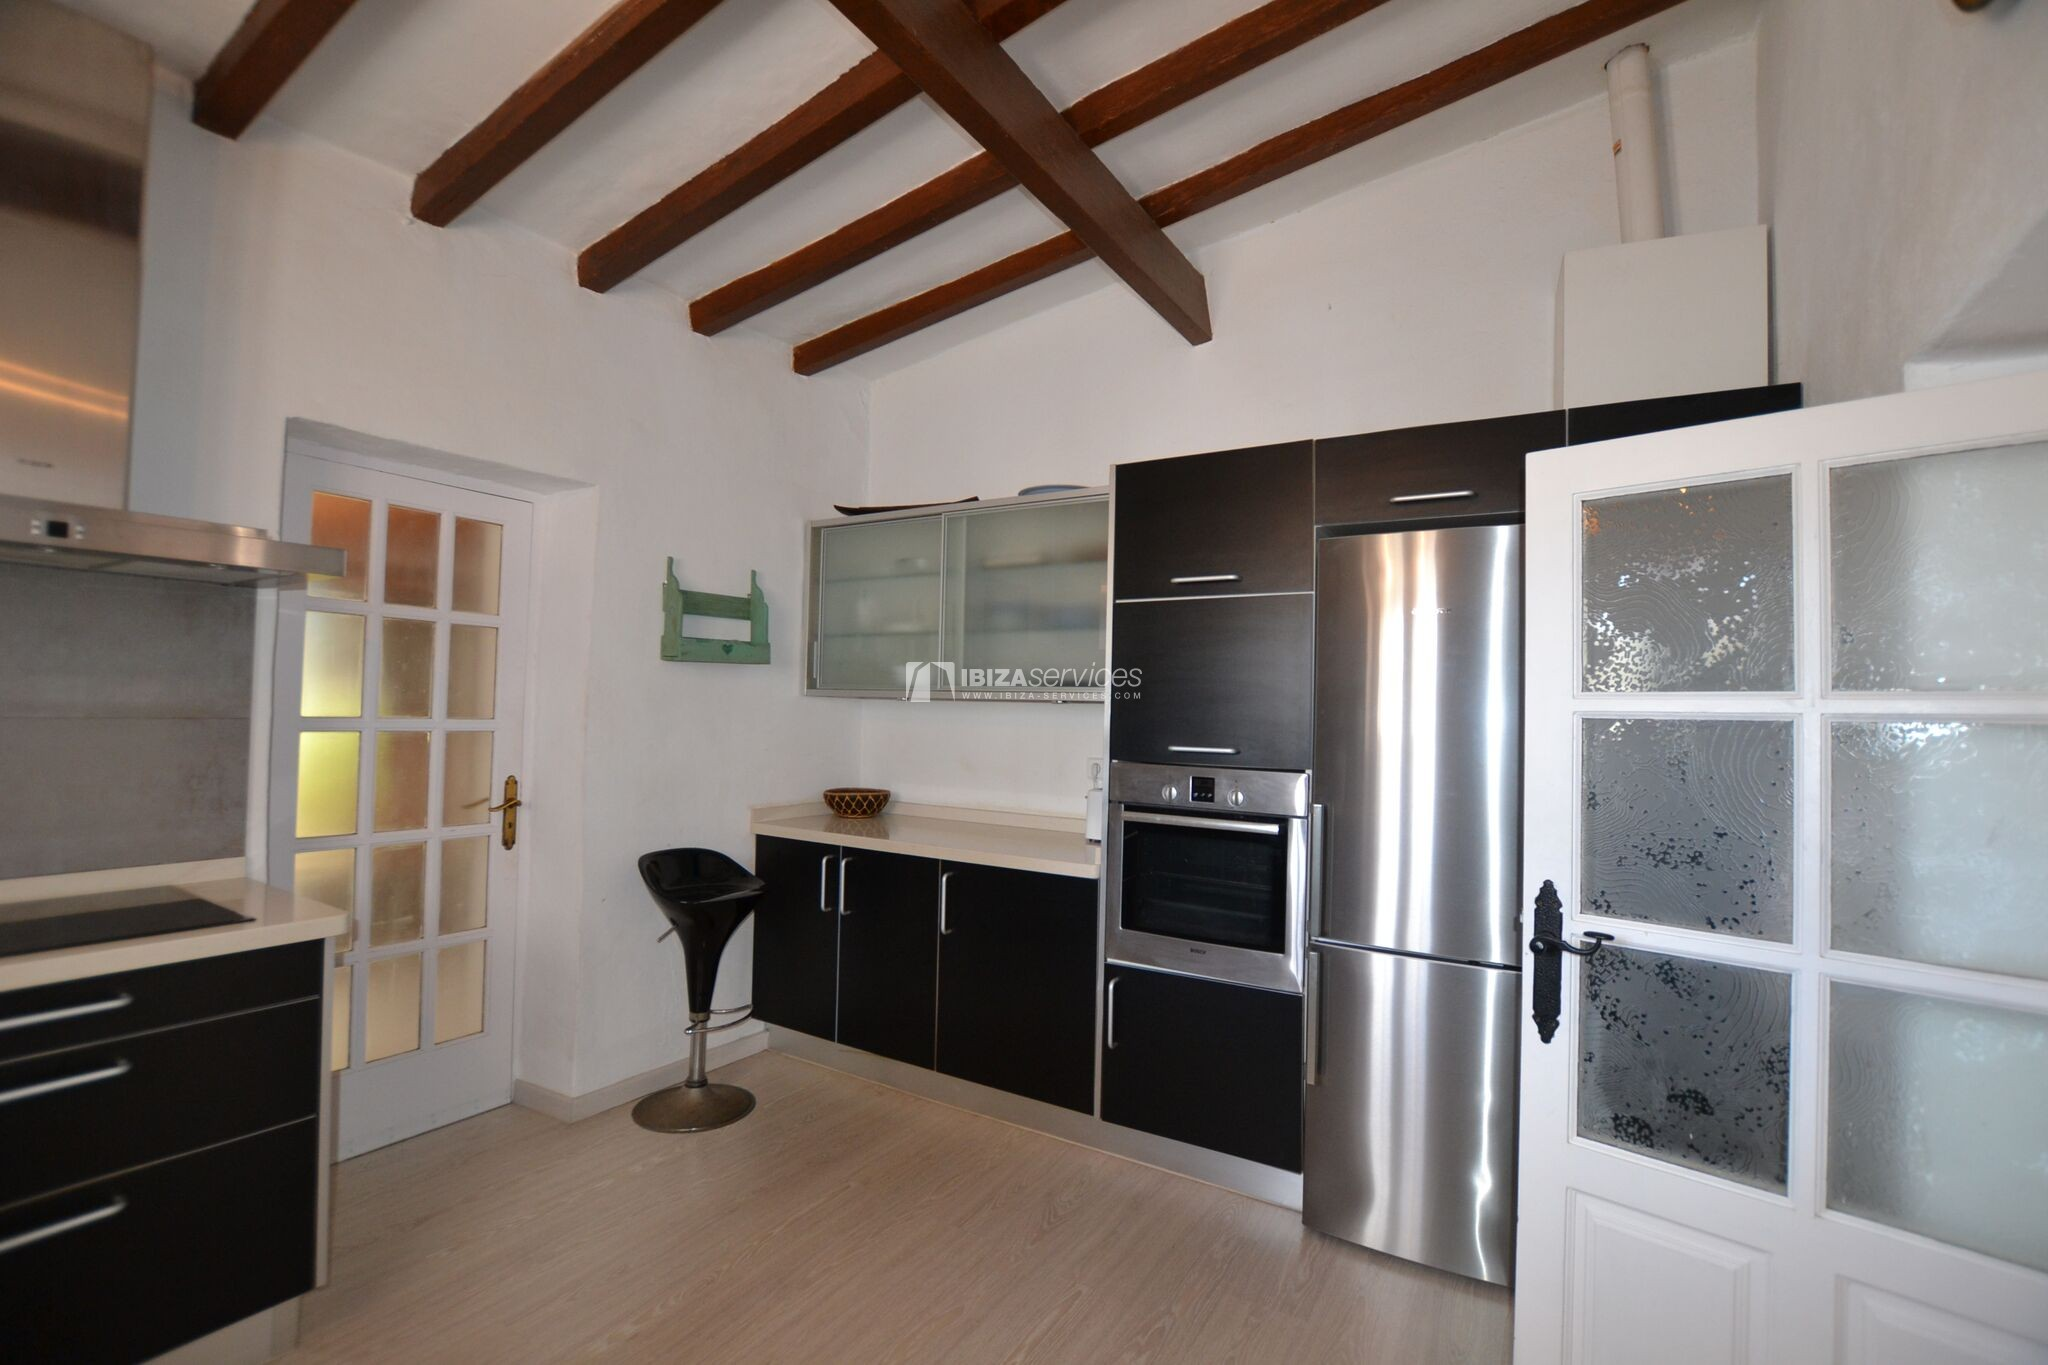 Charming house weekly rental San jordi perspectiva 21